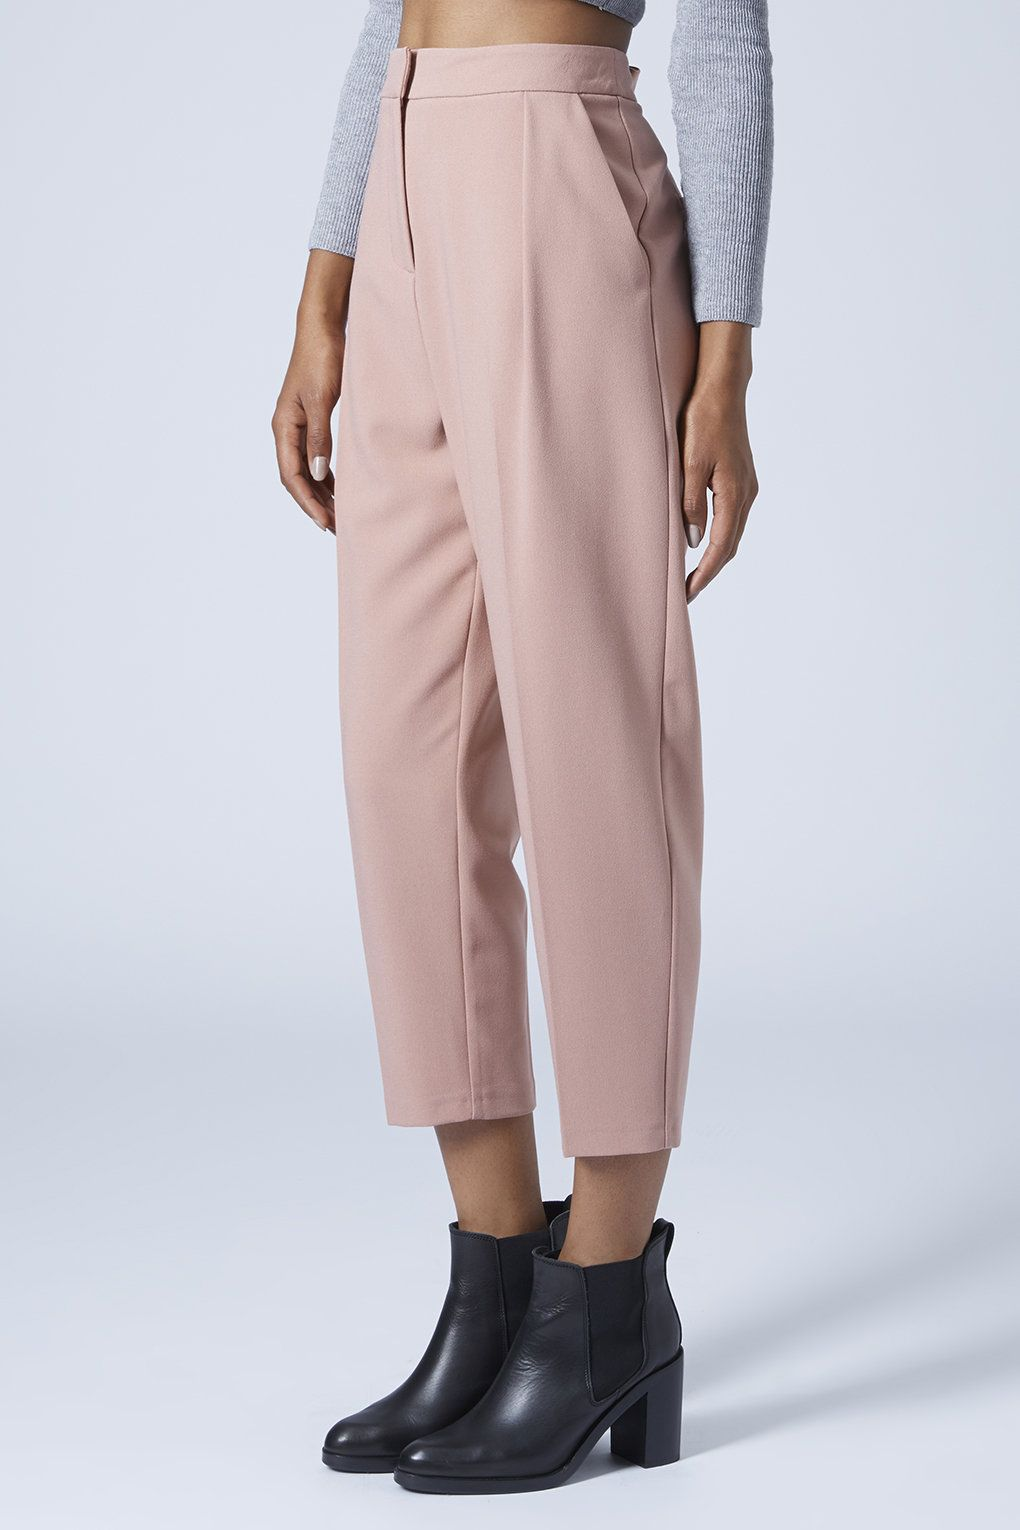 0a7414ed152aa Cropped Peg Leg Trousers - Clothing- Topshop